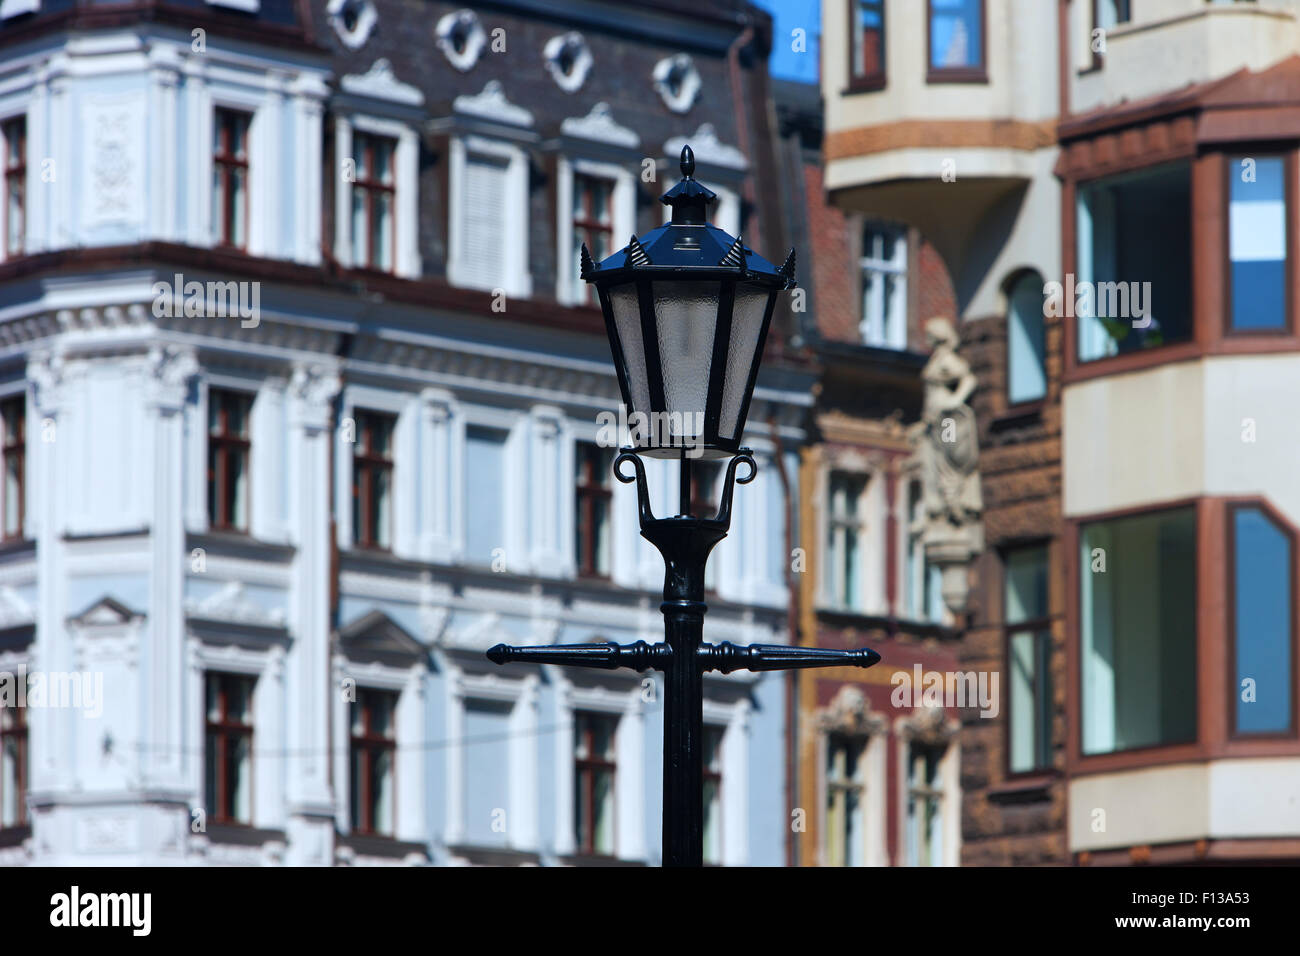 Latvia, Riga. Street lamp on the background of the facades of old houses of the old town on a sunny day at the Dome - Stock Image